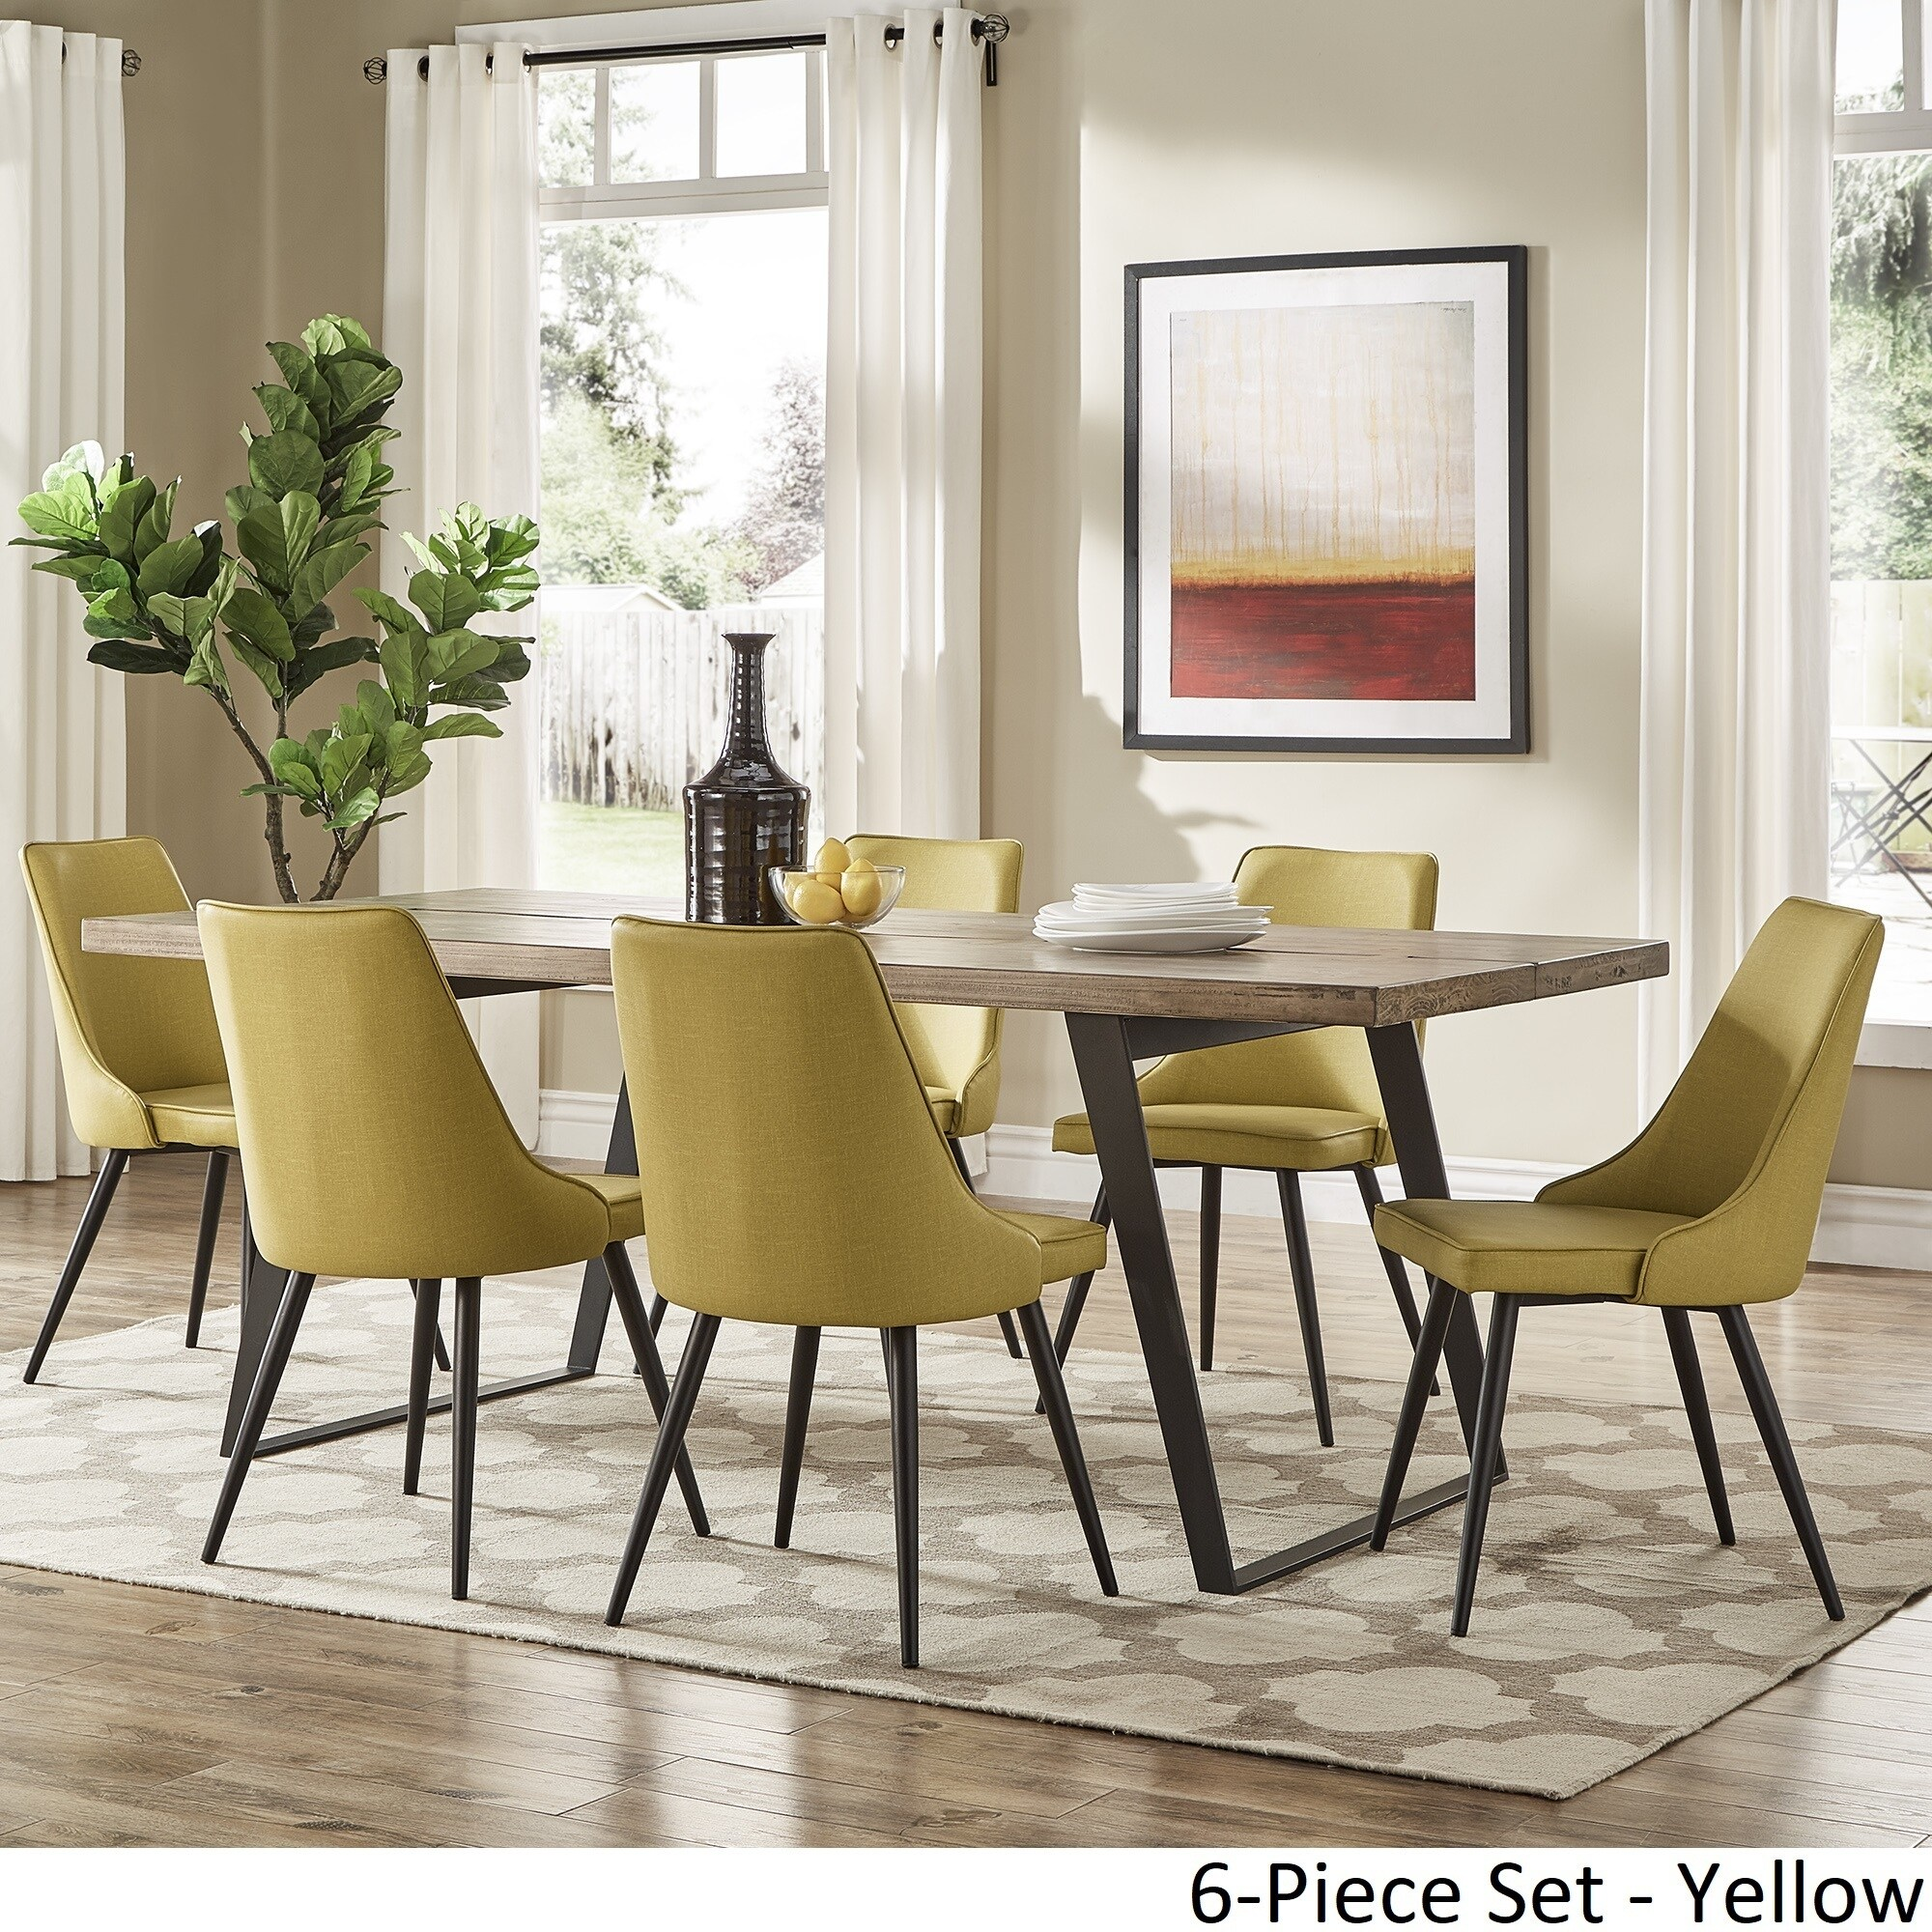 Division Mid Century Split Top Rectangular Dining Set By INSPIRE Q Modern    Free Shipping Today   Overstock.com   24360228